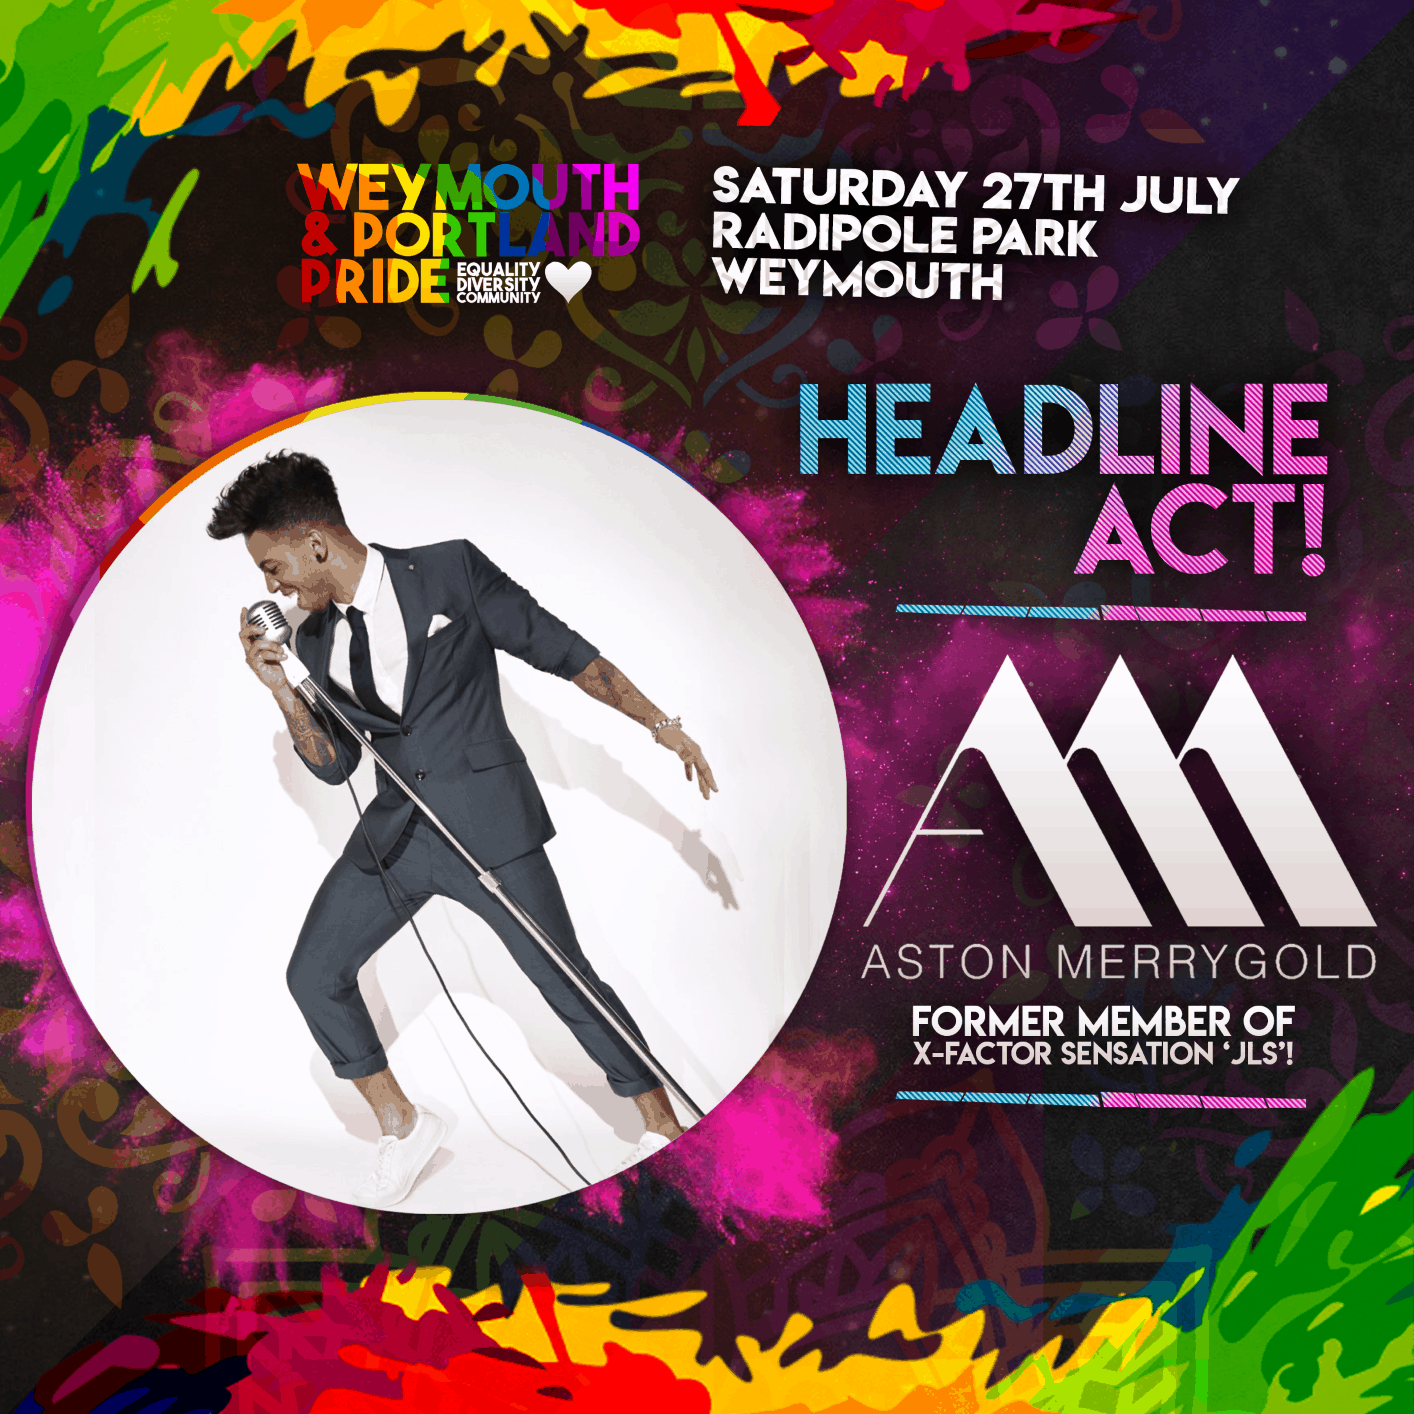 Weymouth & Portland Pride Main Stage Headline Acts Announced